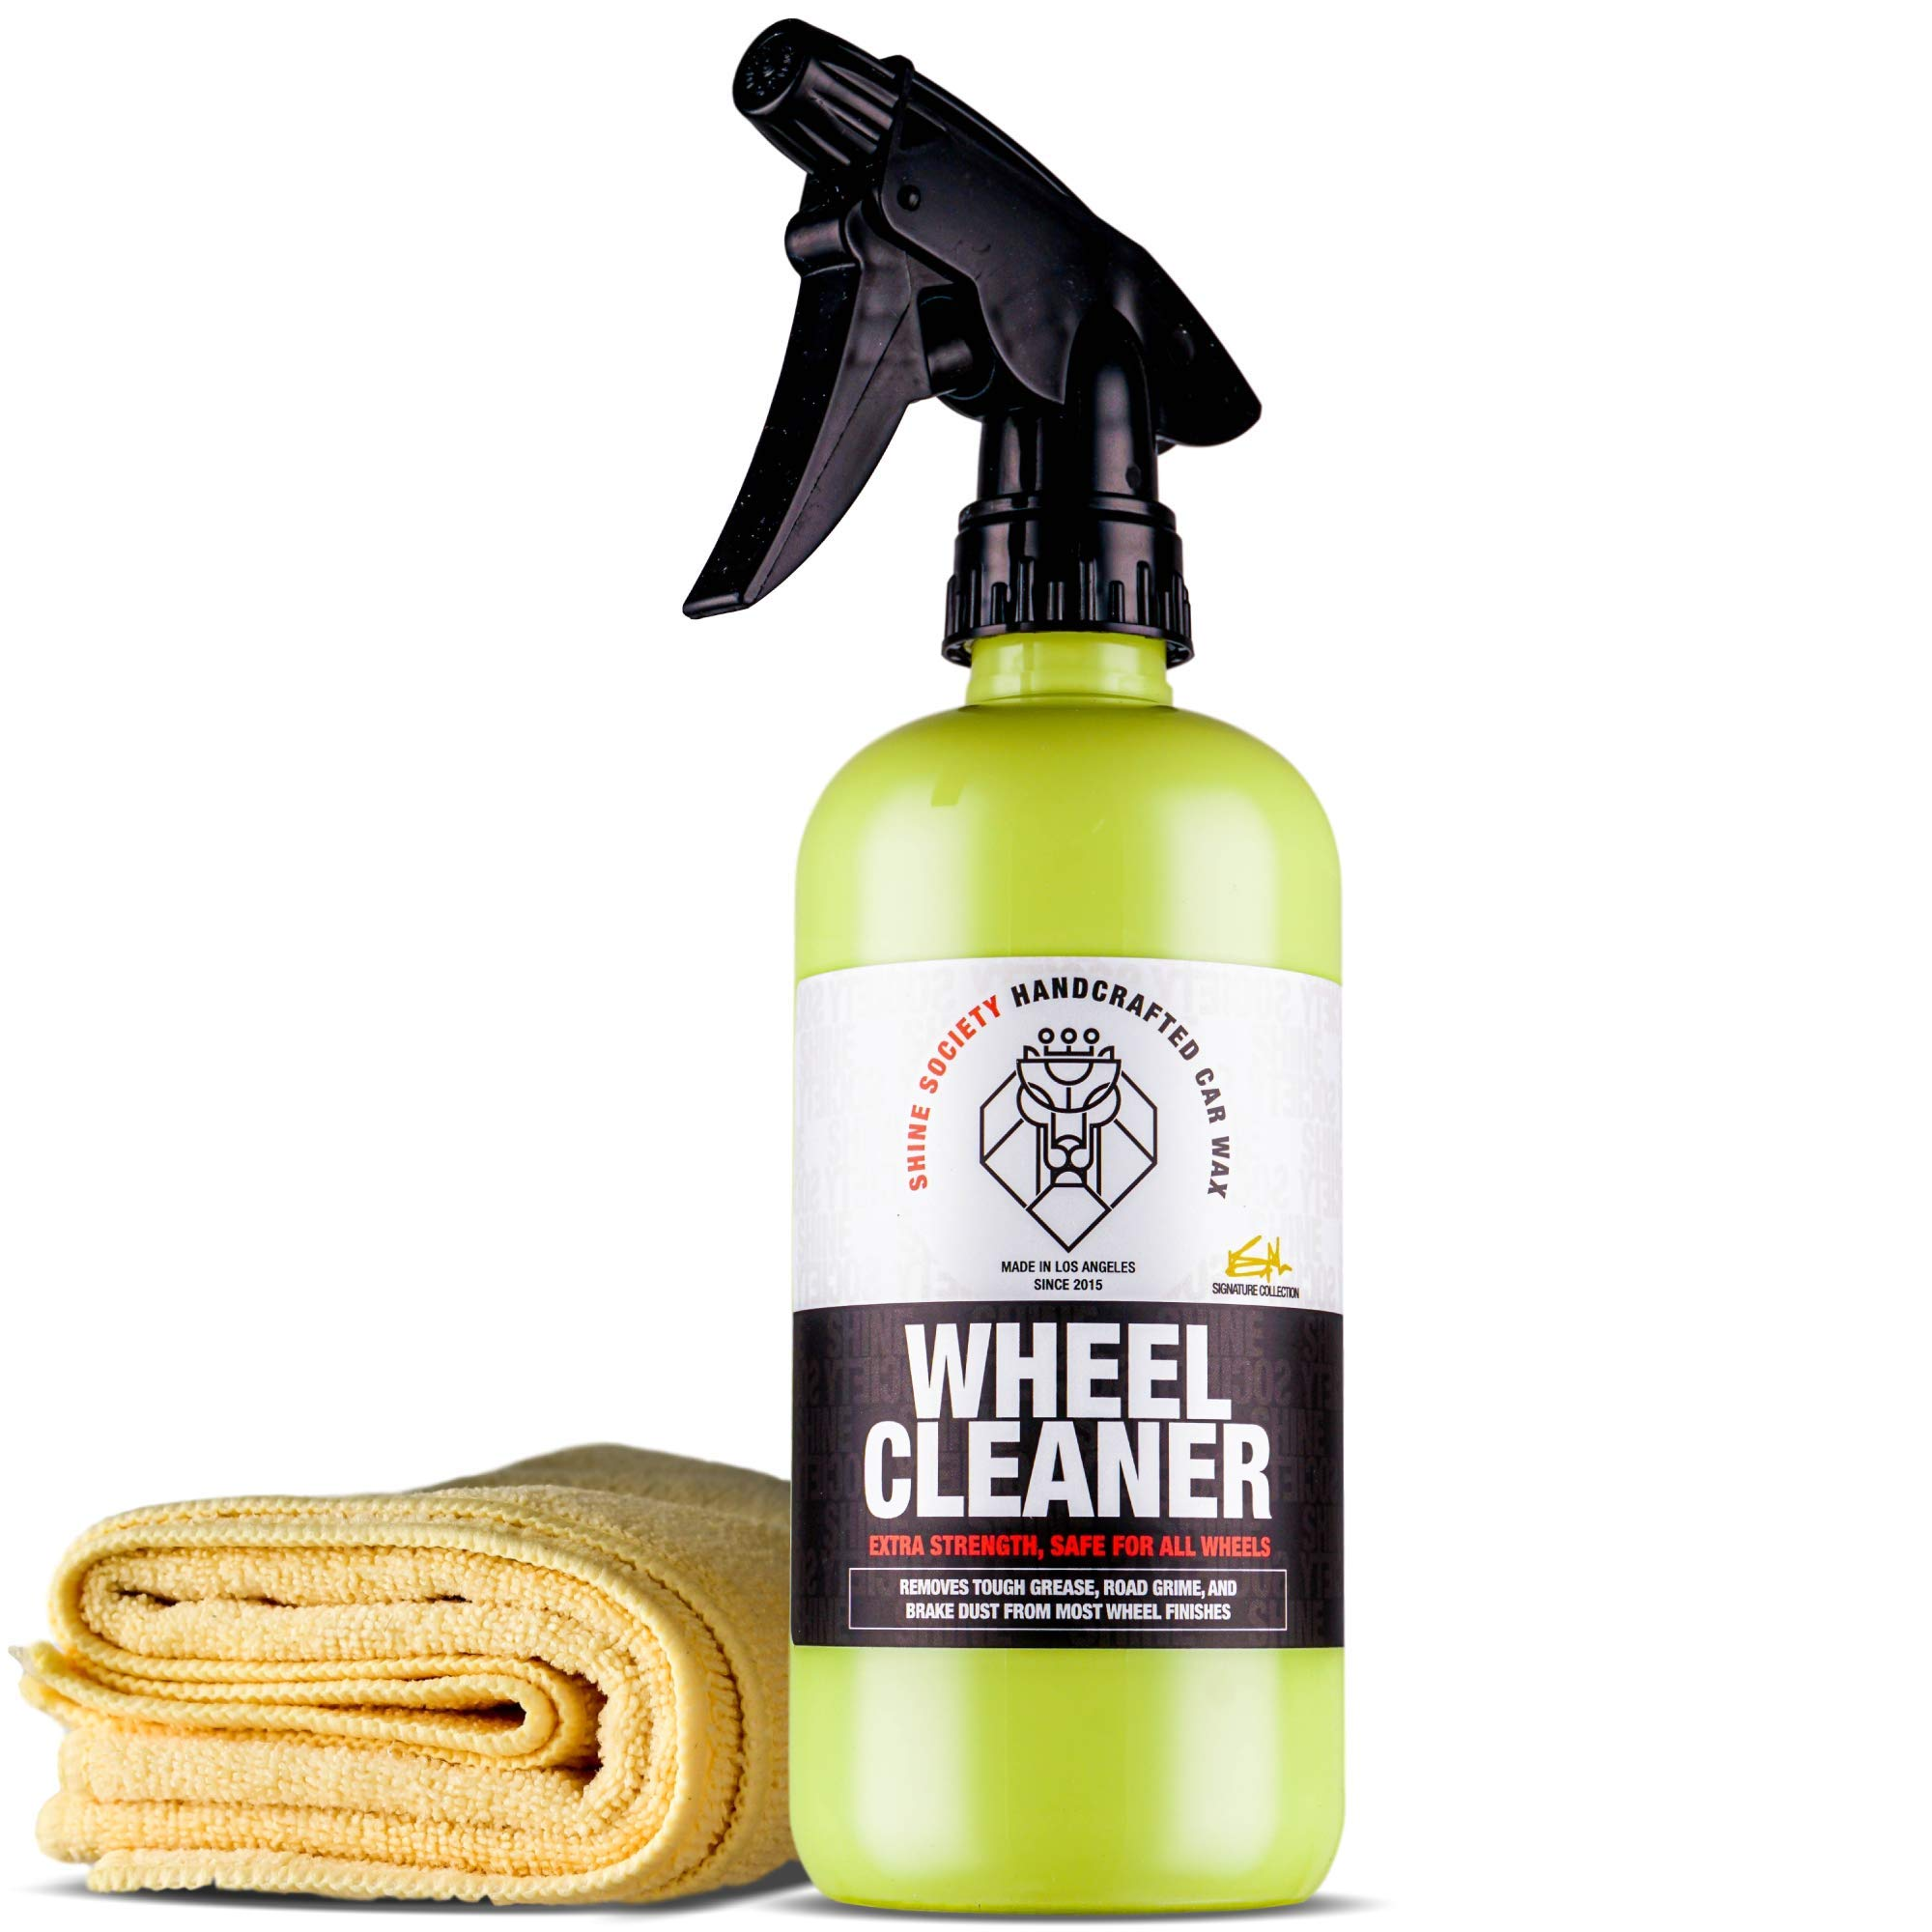 Shine Society Wheel Cleaner, Heavy Duty Strength for Removing Tough Brake Dust and Road Grime from Chrome, Alloy, and Painted Wheels with Microfiber Towel Included (18oz with Towel)